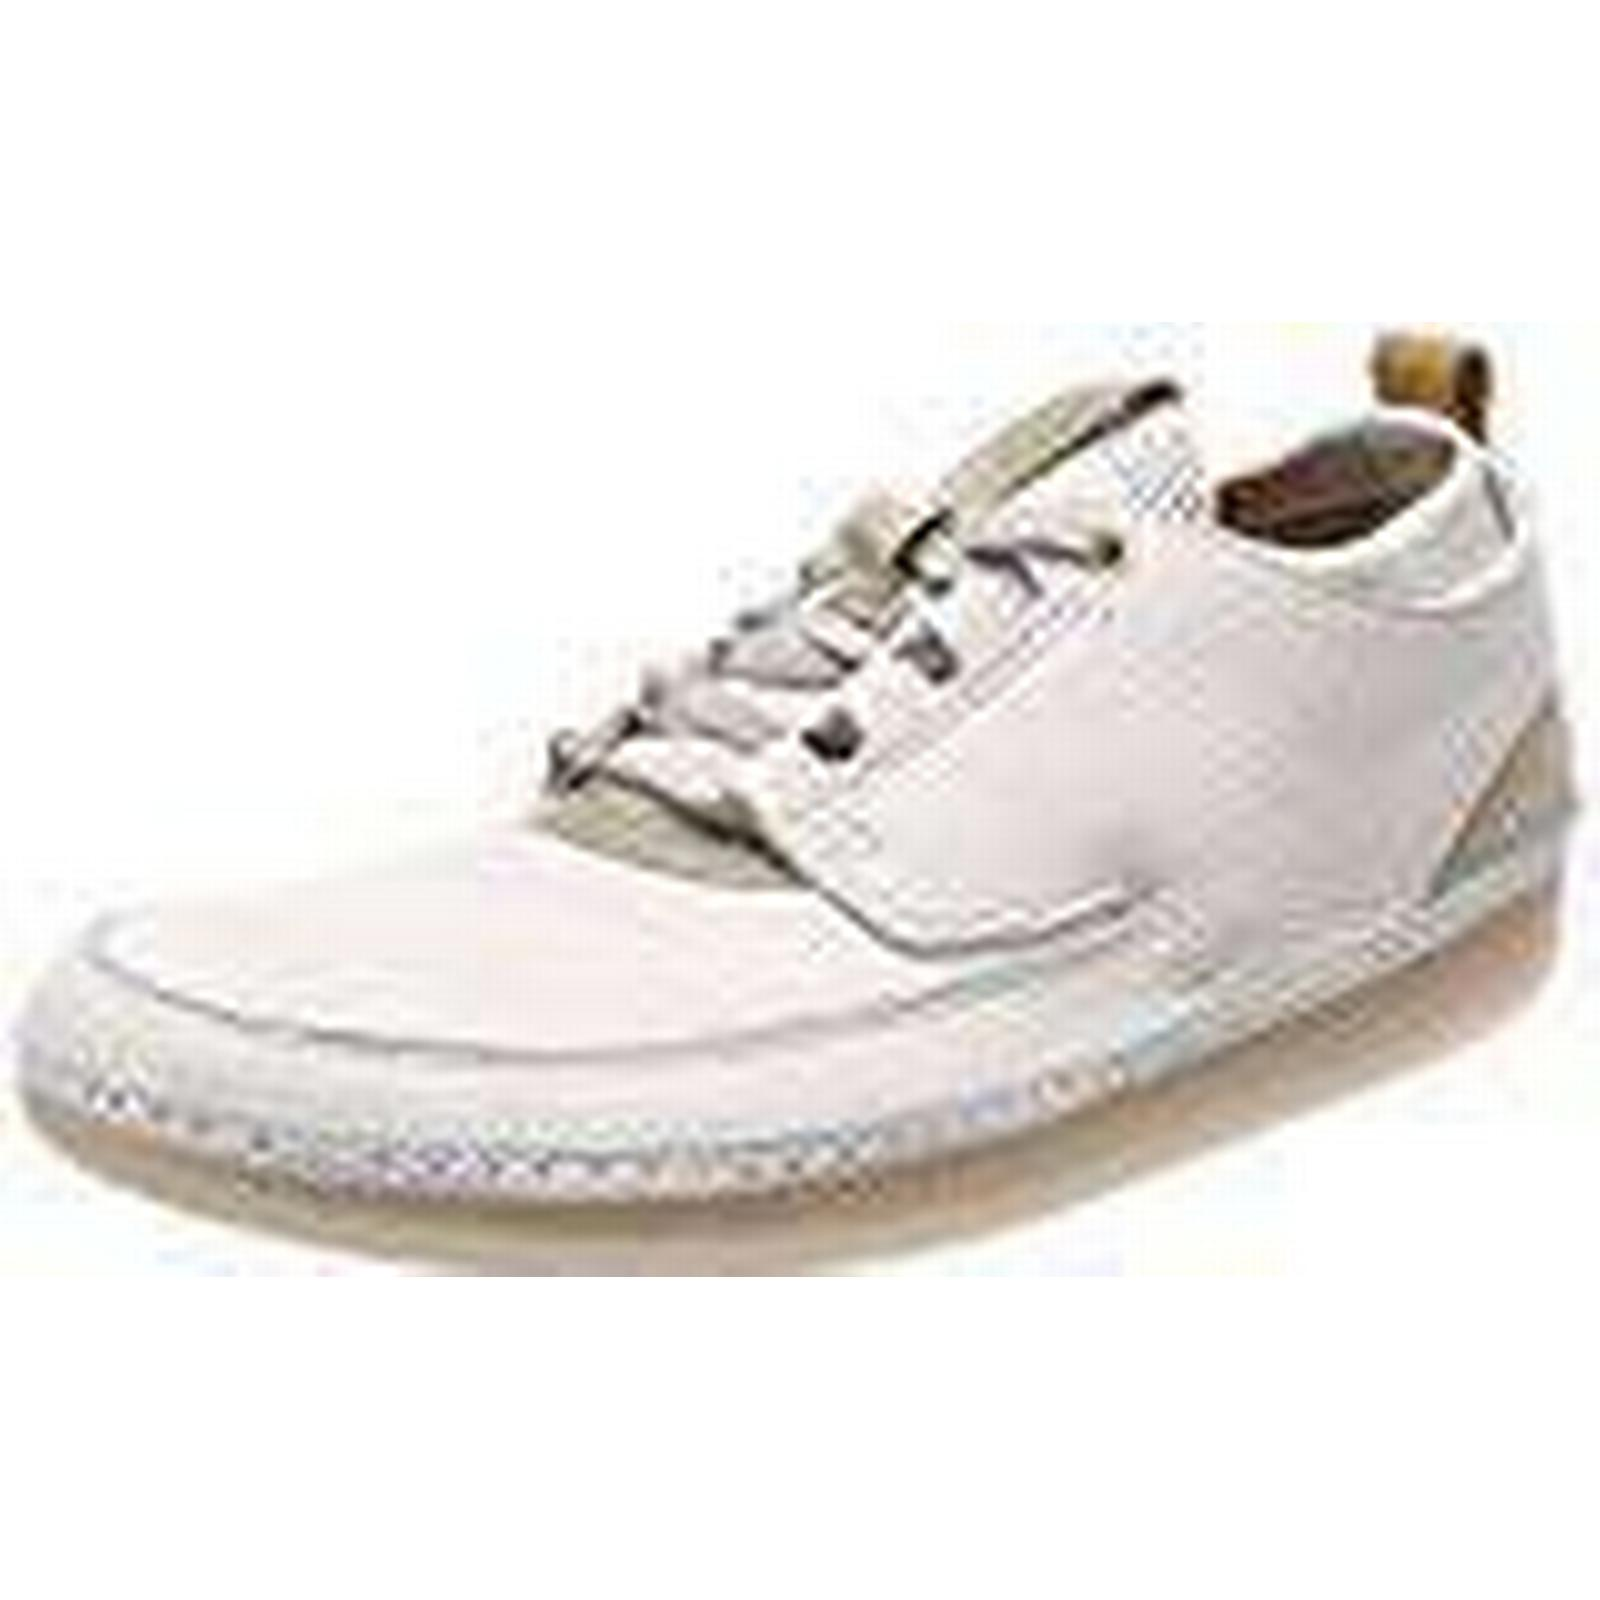 Clarks Men's Nature IV 9 Trainers, (White Combi-), 9 UK 9 IV UK 9cce9a